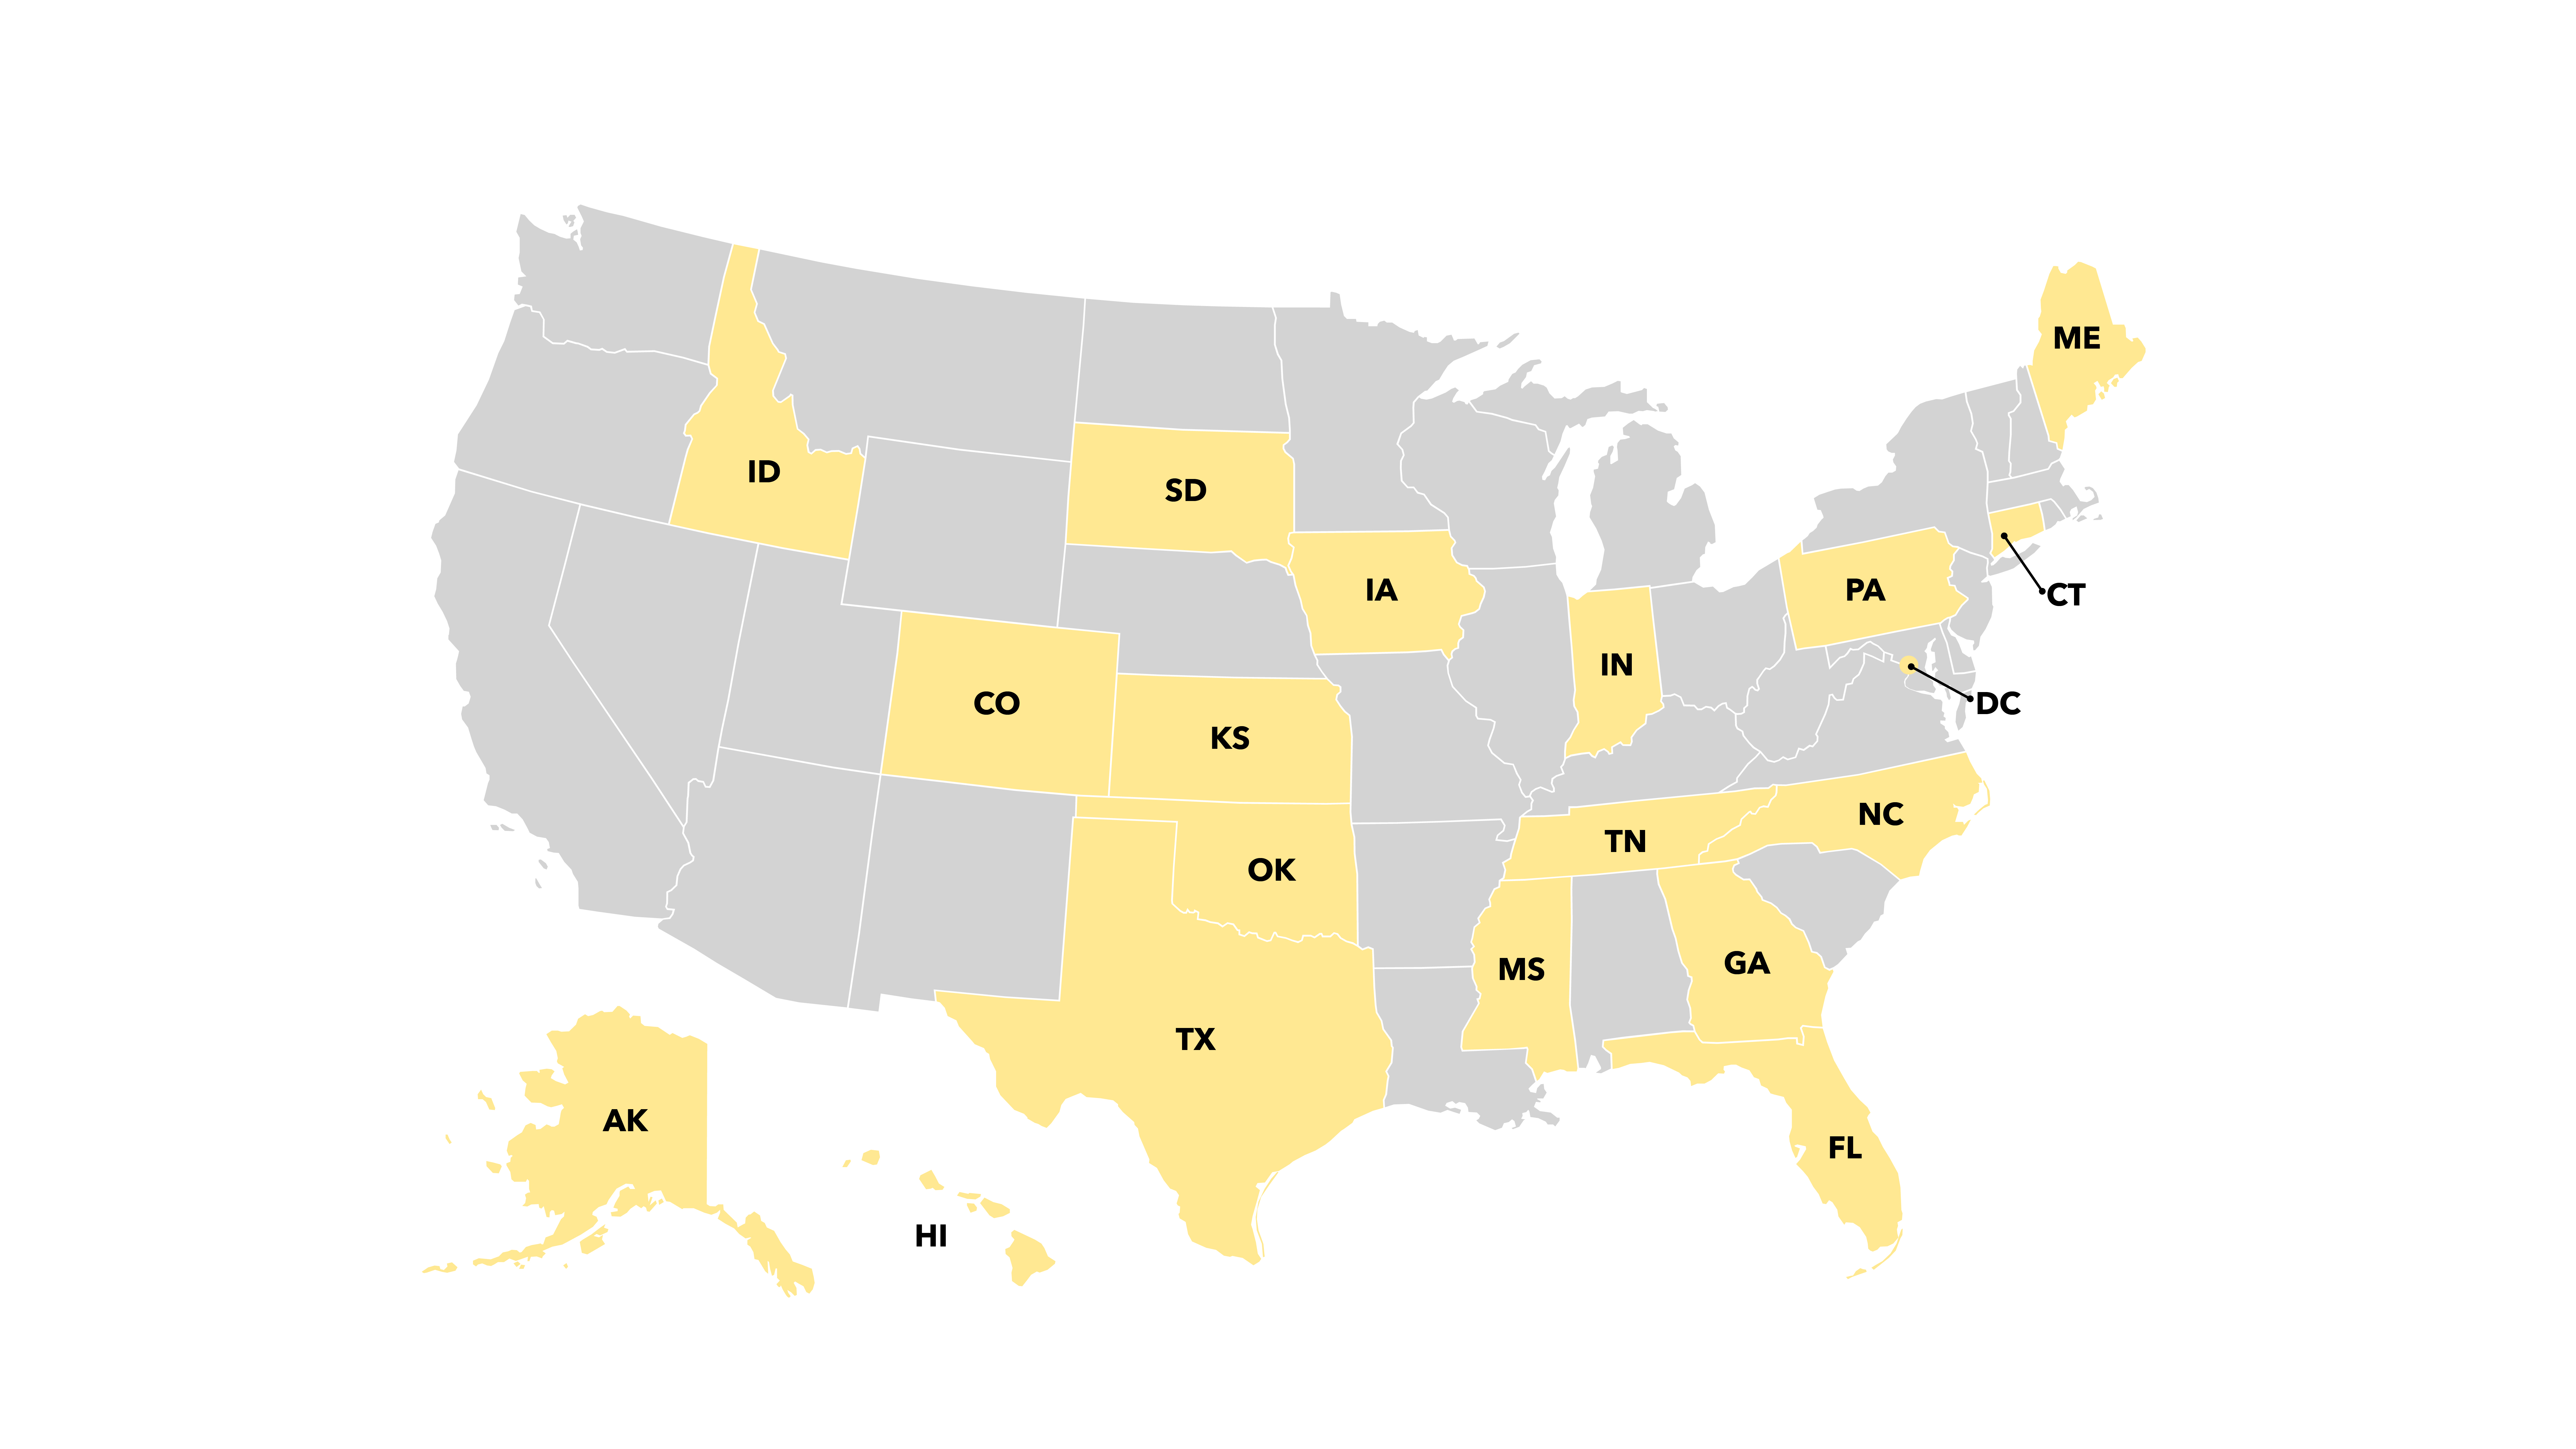 map of states that require clear and convincing evidence